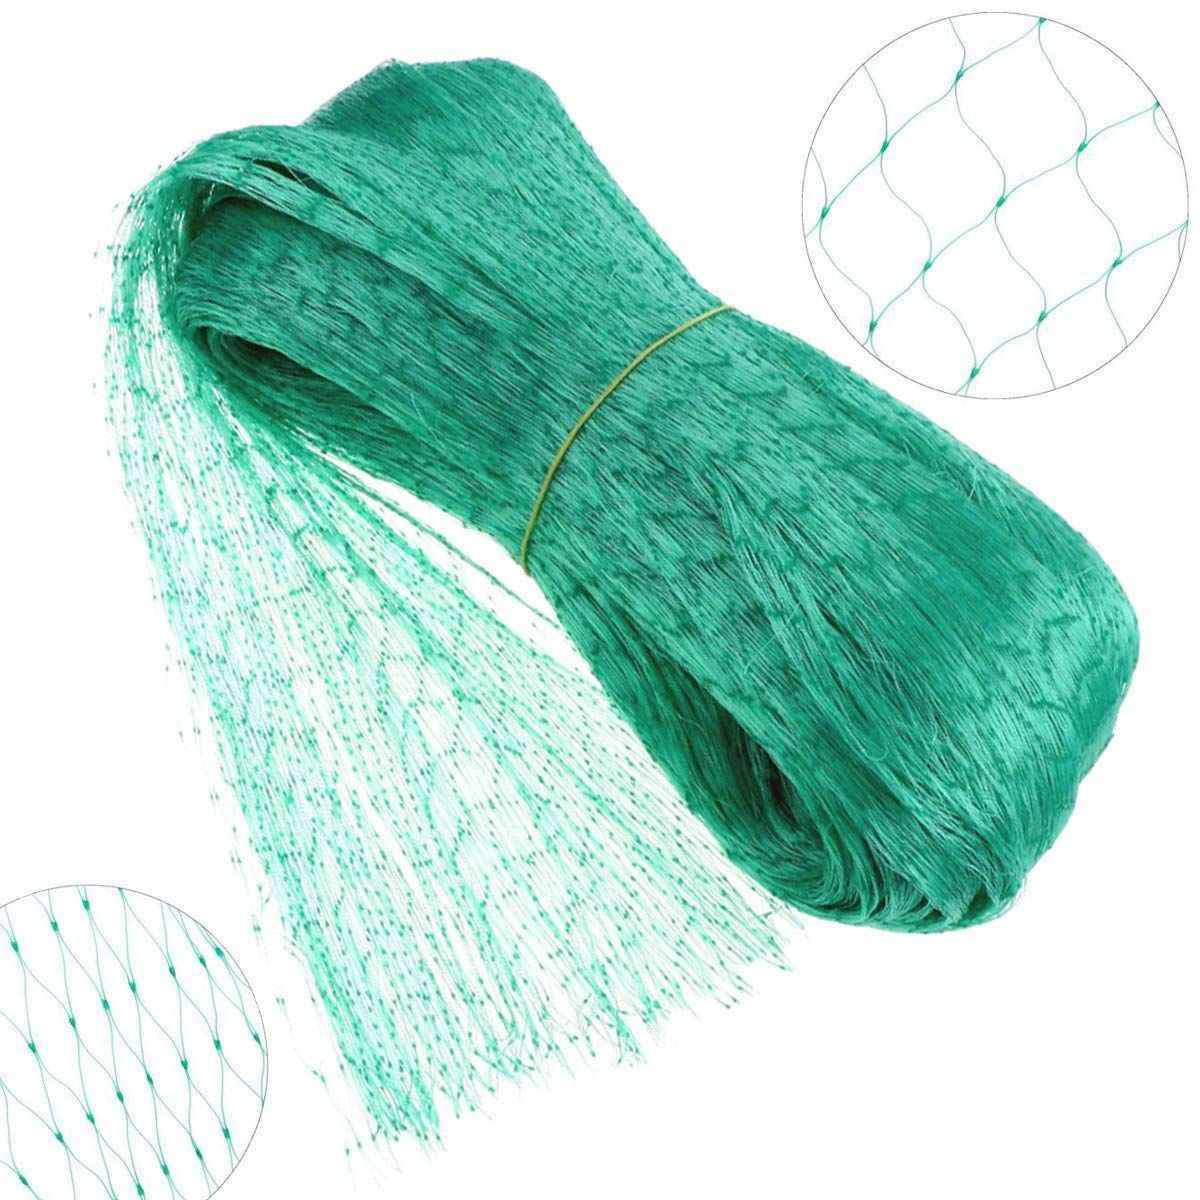 Mesh Bird Netting For Garden Chicken Poultry Pond Heron Pigeon Mesh To Protect Plants Vegetables Fruit Tree Bird Protection Net